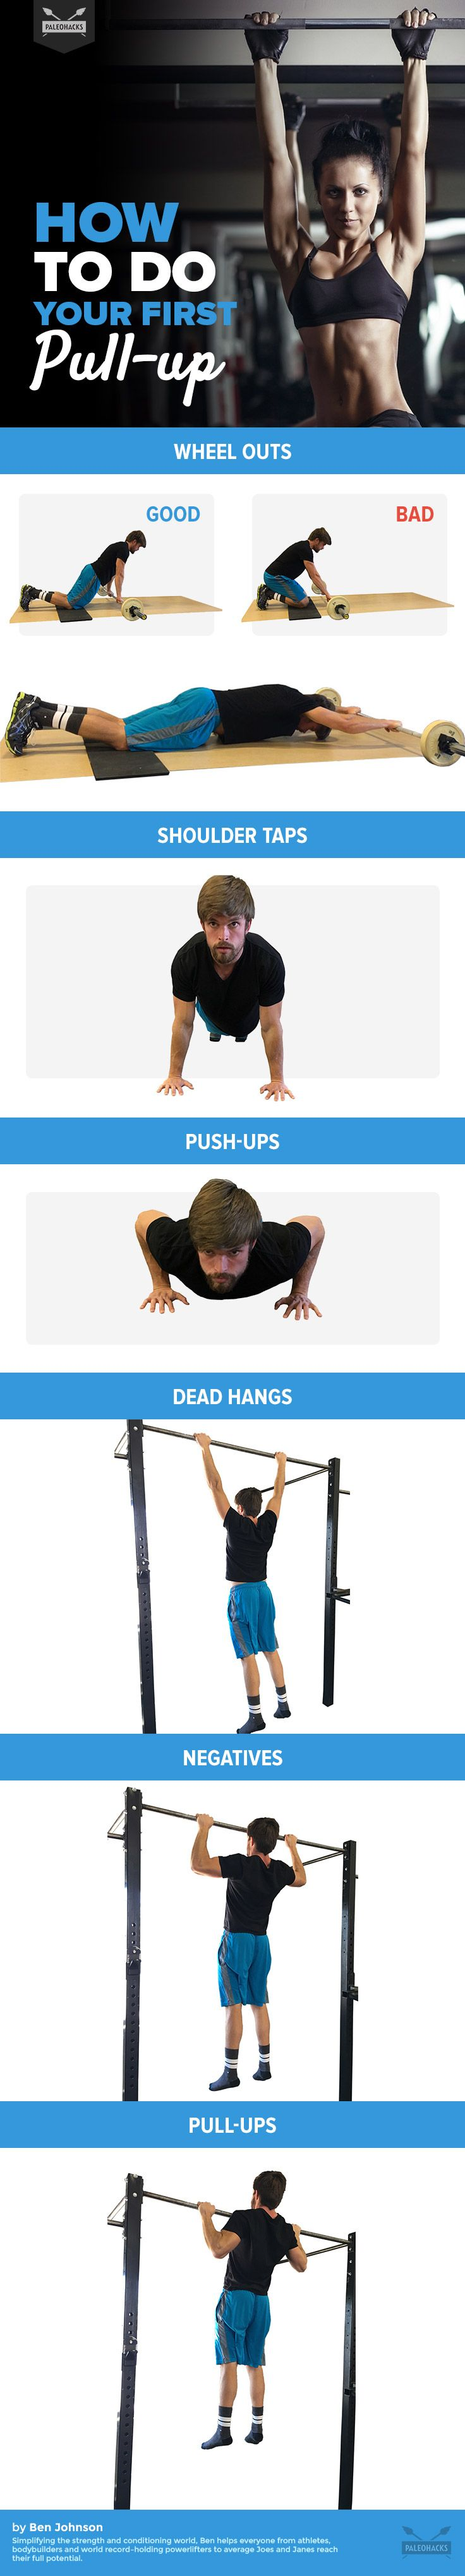 The pull-up is one of the biggest milestones when it comes to upper body strength. Here are easy-to-follow moves to not only get your chin over the bar, but also strengthen your core, chest, and shoulders. For the full workout visit us here: http://paleo.co/firstpullup